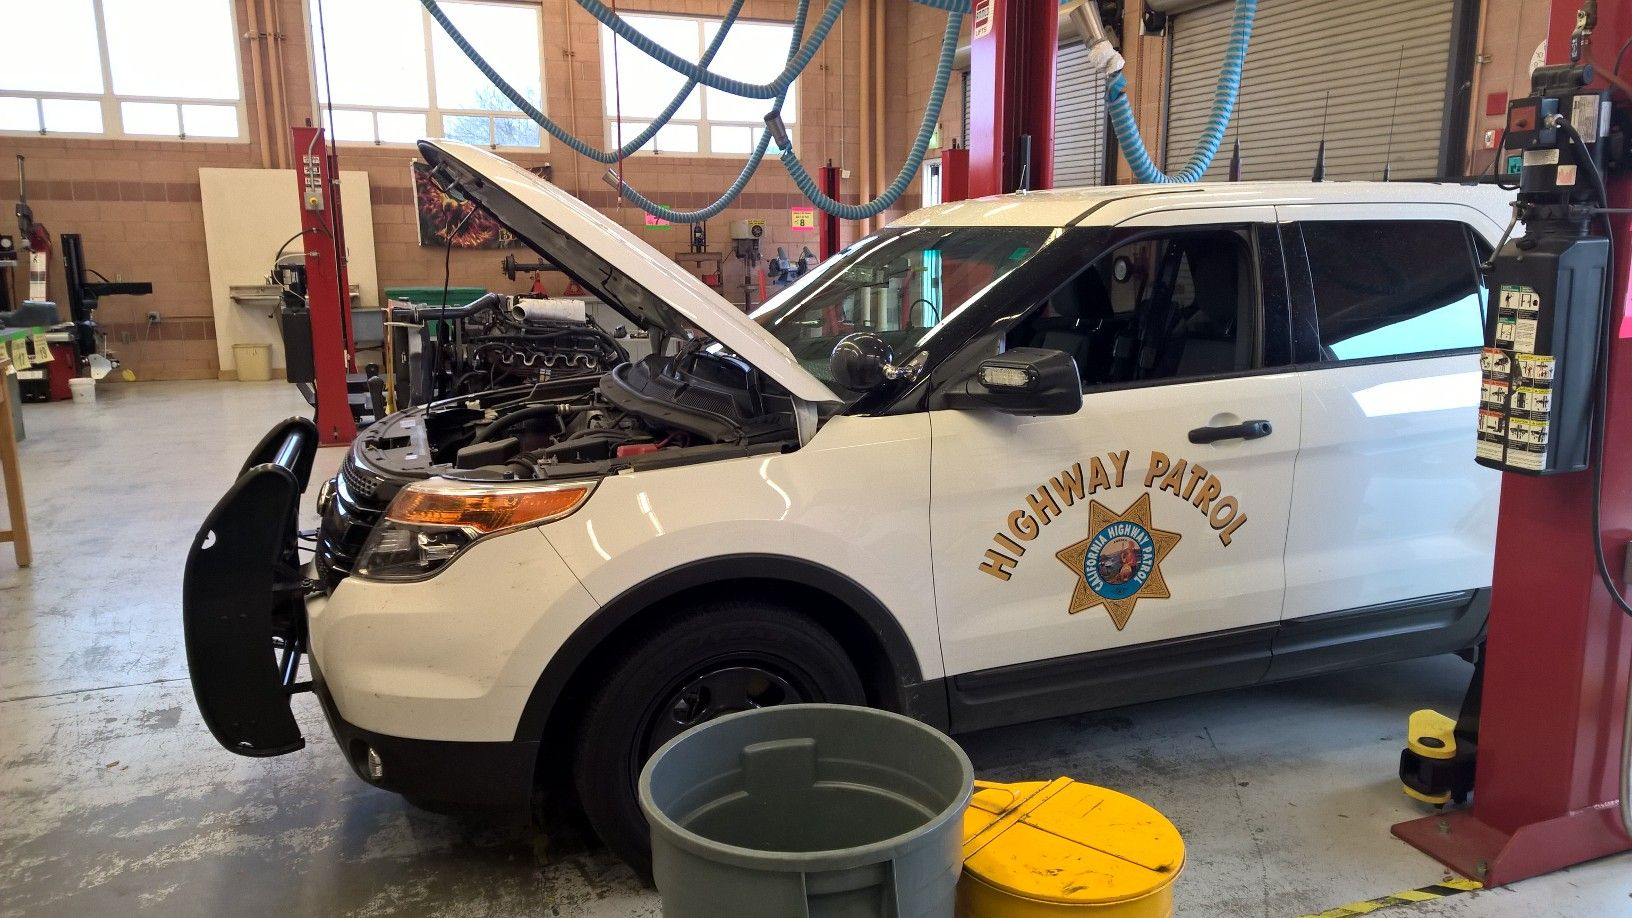 Chp Explorer In The Garage For Repair California Highway Patrol Police Cars Police Uniforms